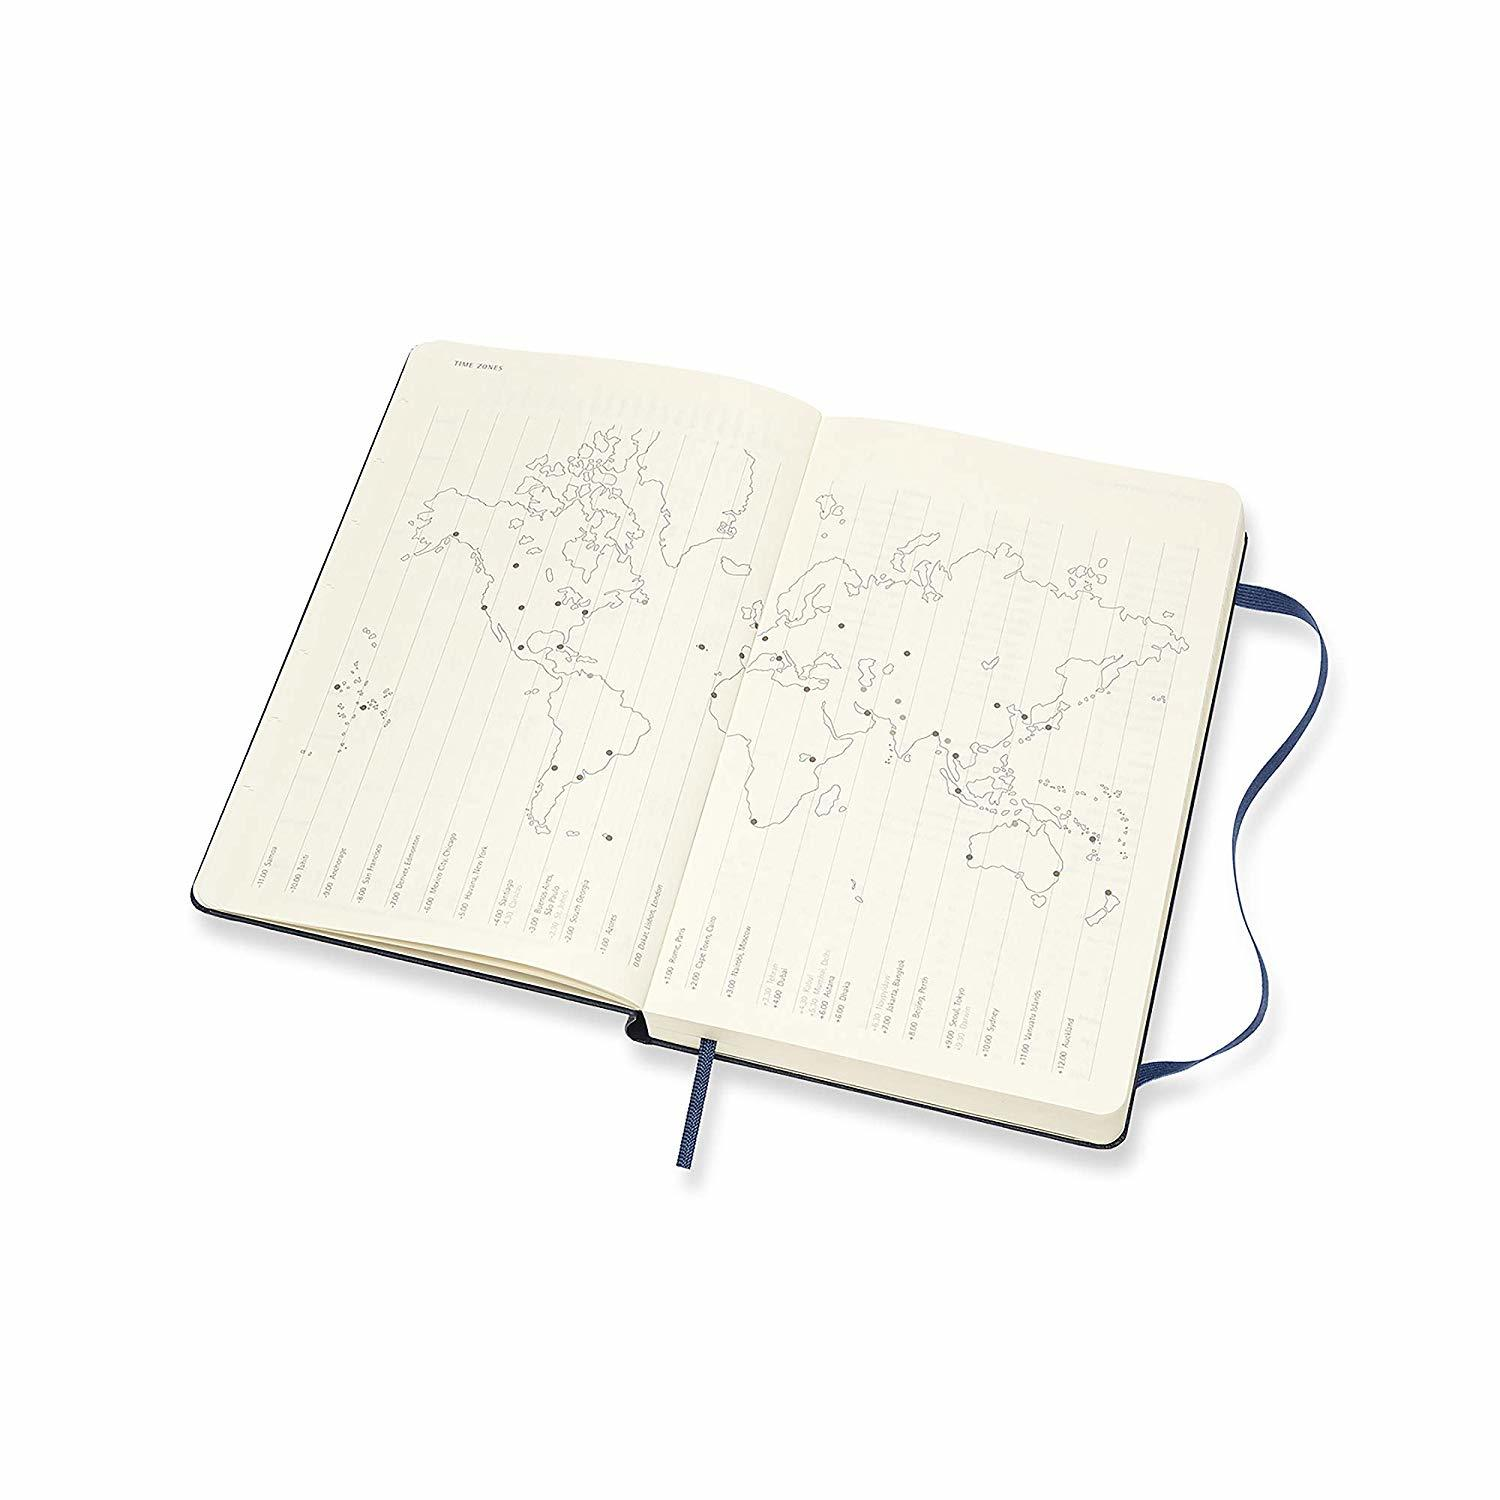 Moleskine: 2020 Diary Large Hard Cover 12 Month Daily - Sapphire Blue image